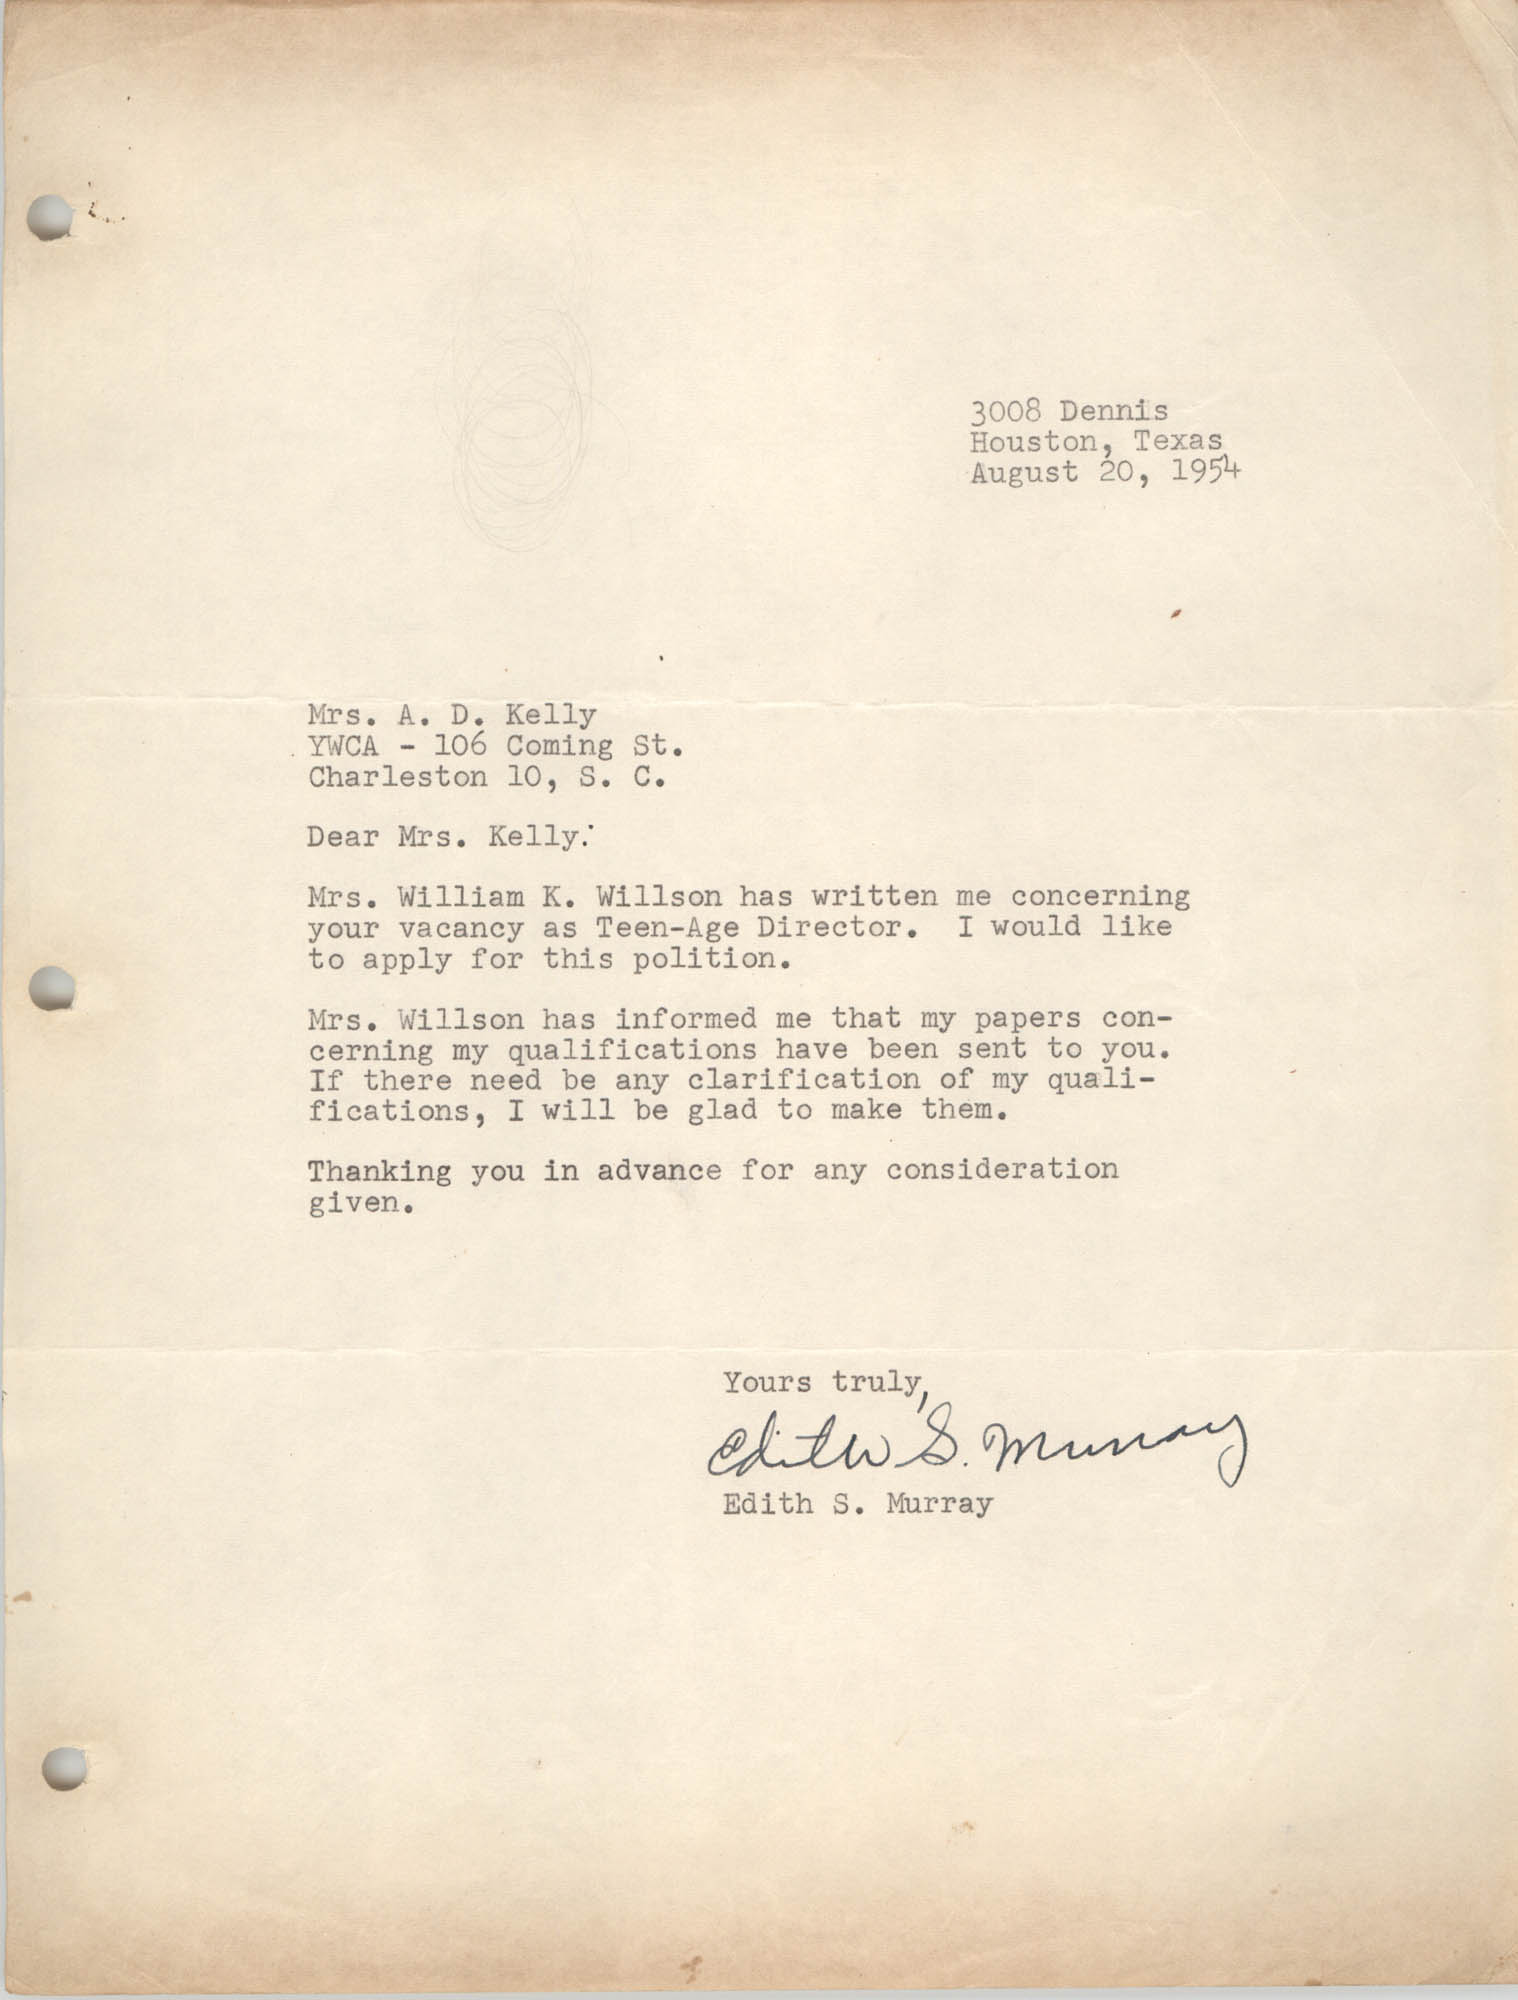 Letter from Edith S. Murray to A. D. Kelly, August 20, 1954